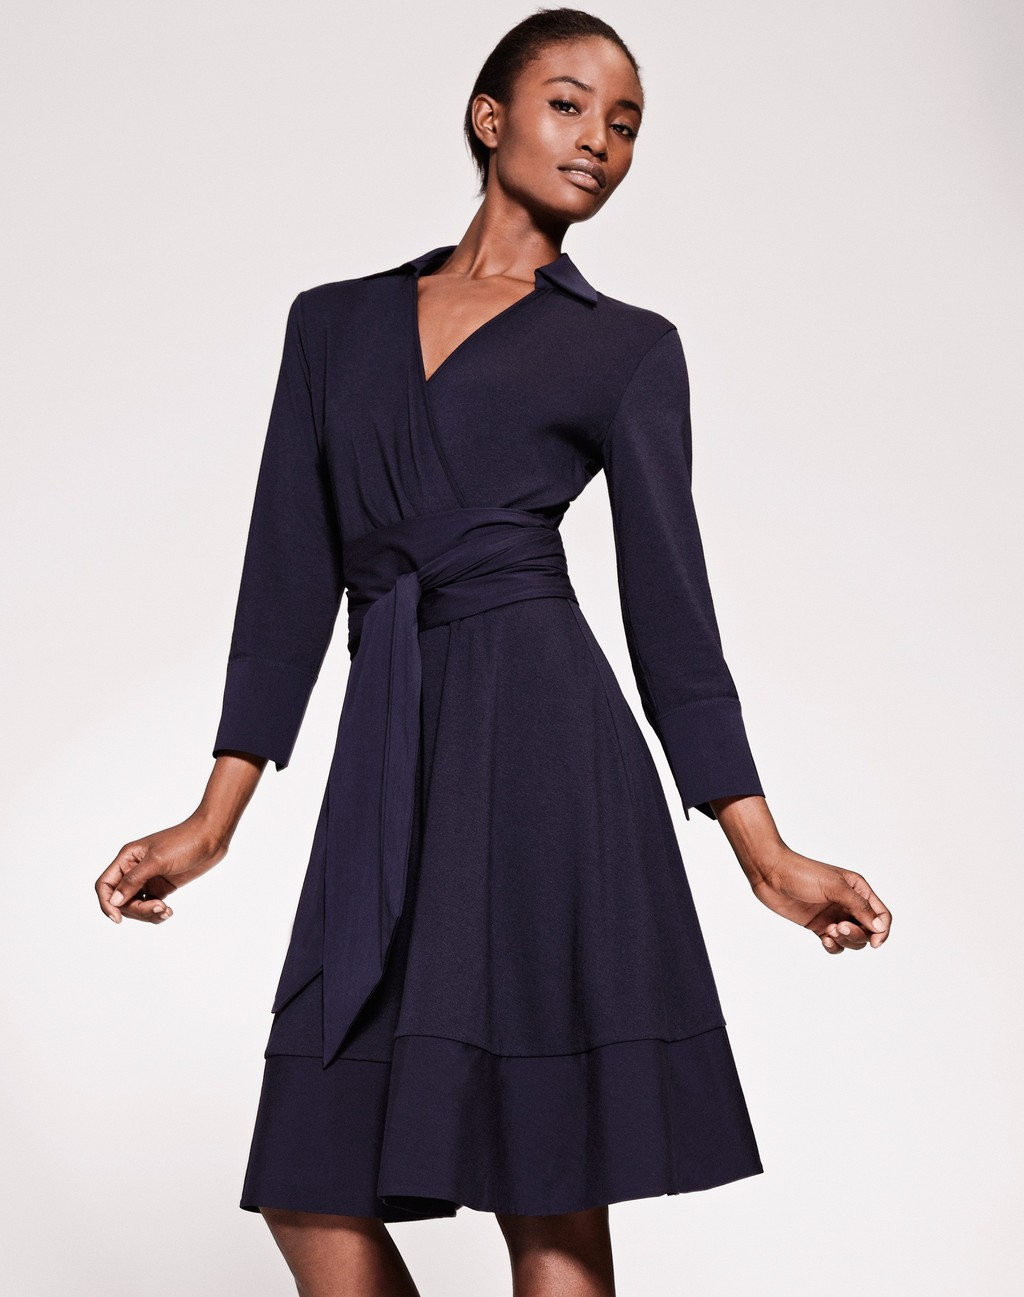 All Day Dress Navy - style: faux wrap/wrap; length: below the knee; neckline: shirt collar/peter pan/zip with opening; pattern: plain; waist detail: belted waist/tie at waist/drawstring; predominant colour: navy; occasions: evening; fit: body skimming; fibres: cotton - stretch; sleeve length: 3/4 length; sleeve style: standard; pattern type: fabric; texture group: jersey - stretchy/drapey; season: s/s 2016; wardrobe: event